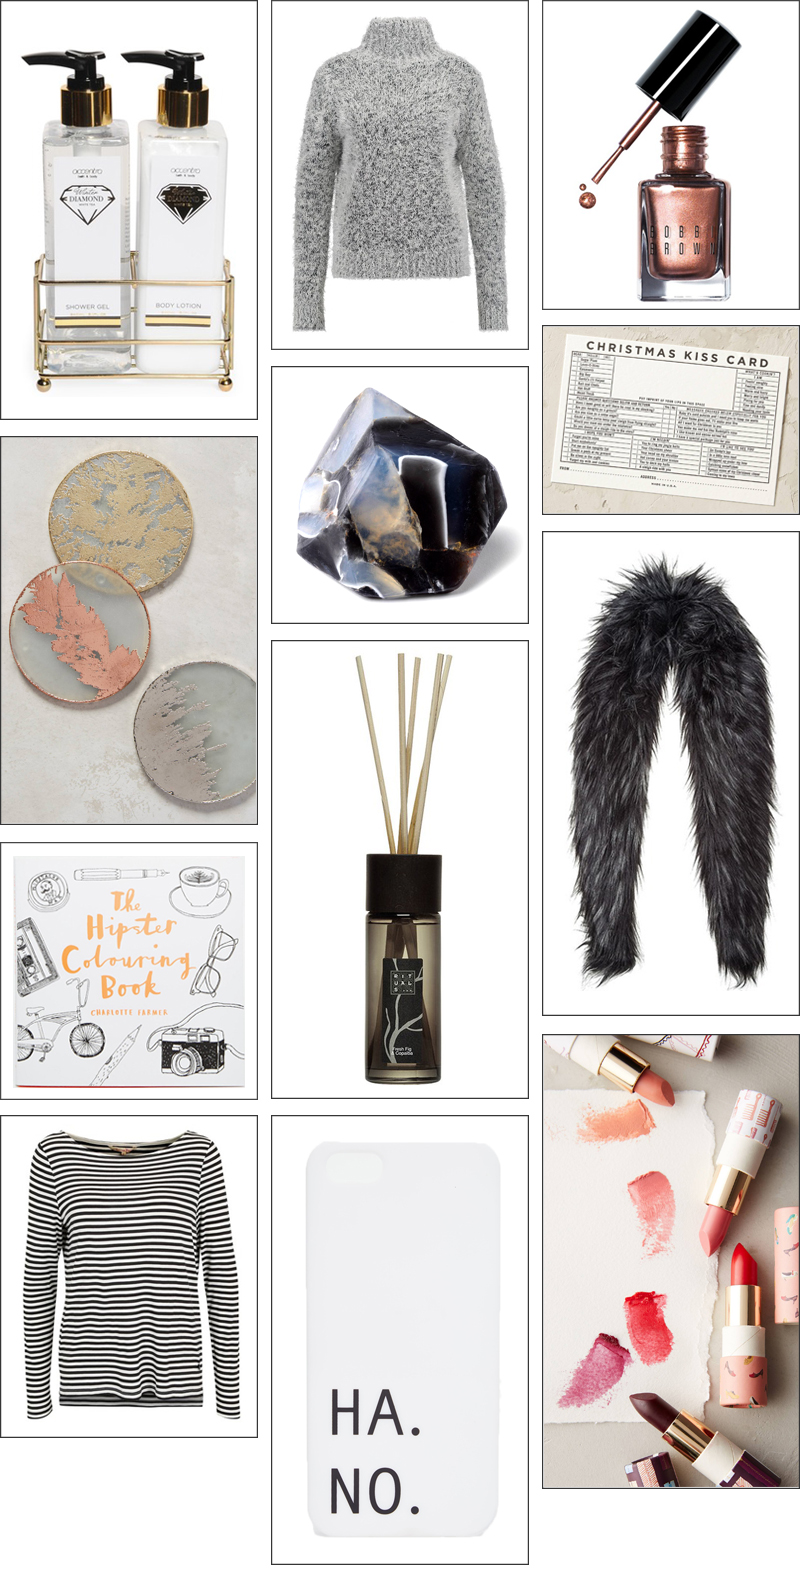 Christmas Gift Guide with under 25 items from fashion to jewelry and home decor